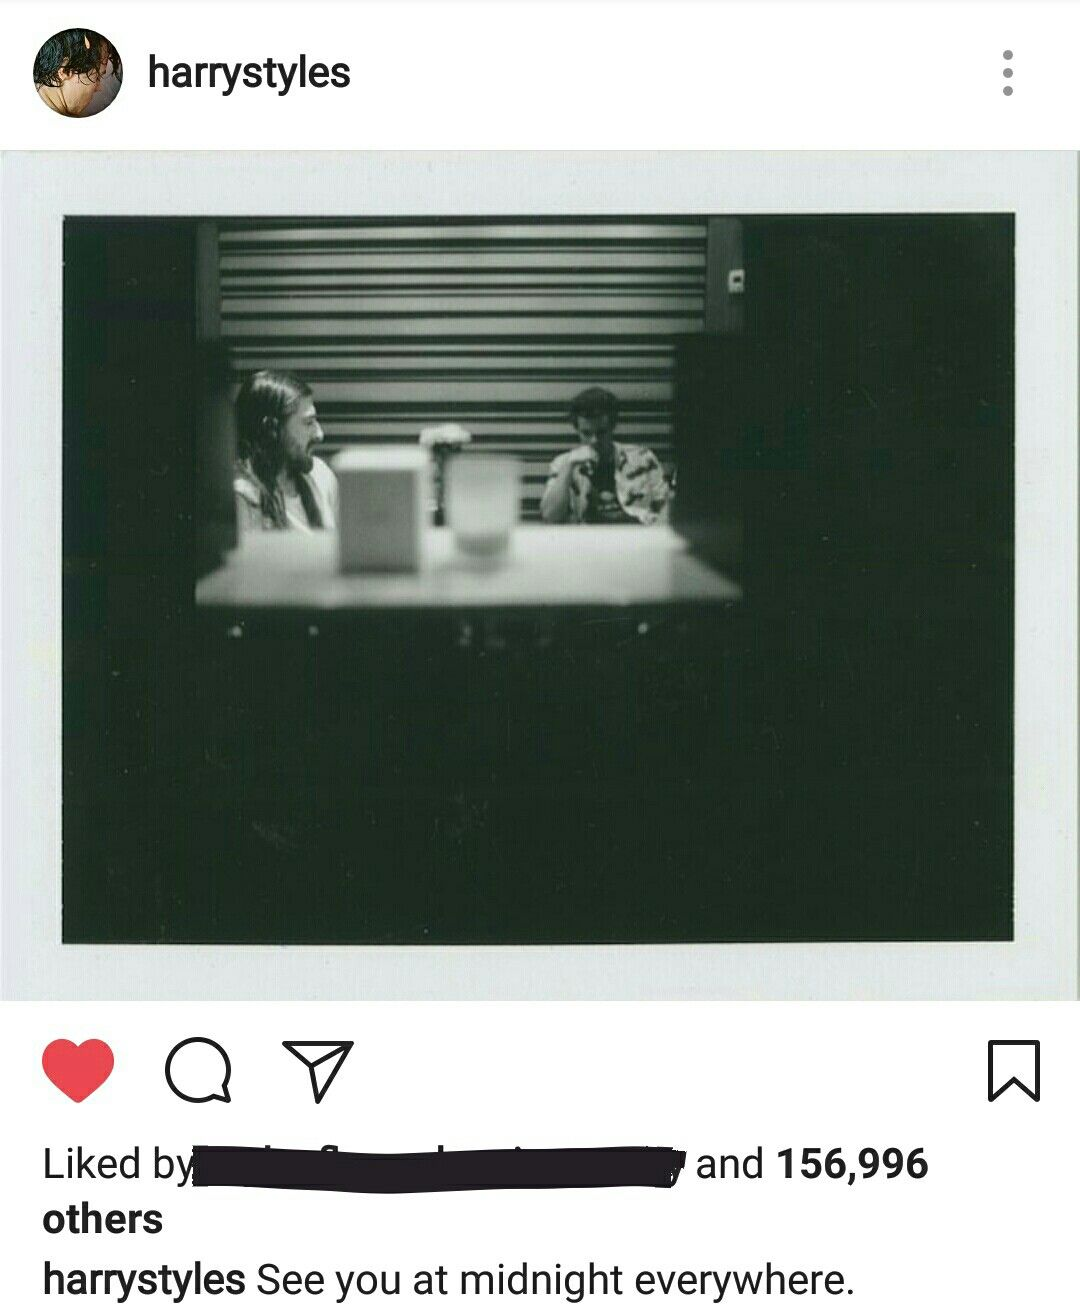 Harry on instagram. The album will be released at midnight May 12th everywhere.